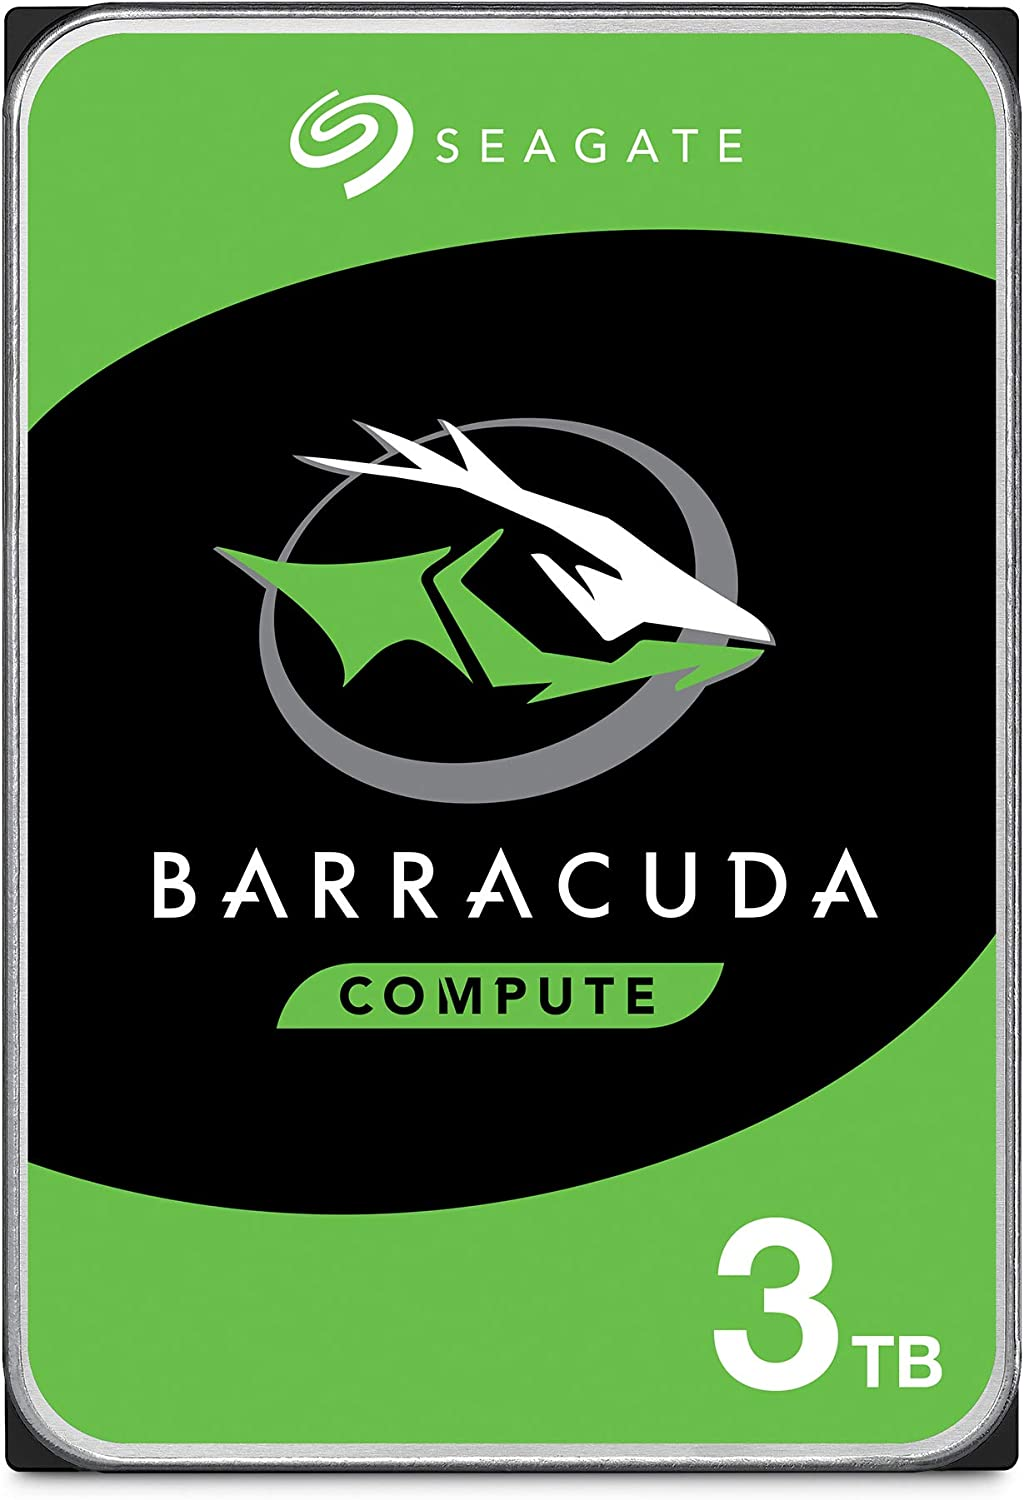 "Seagate Barracuda 3TB ST3000DM007 7200 RPM 64MB SATA 6Gb//s 3.5/"" Hard Drive *New*"